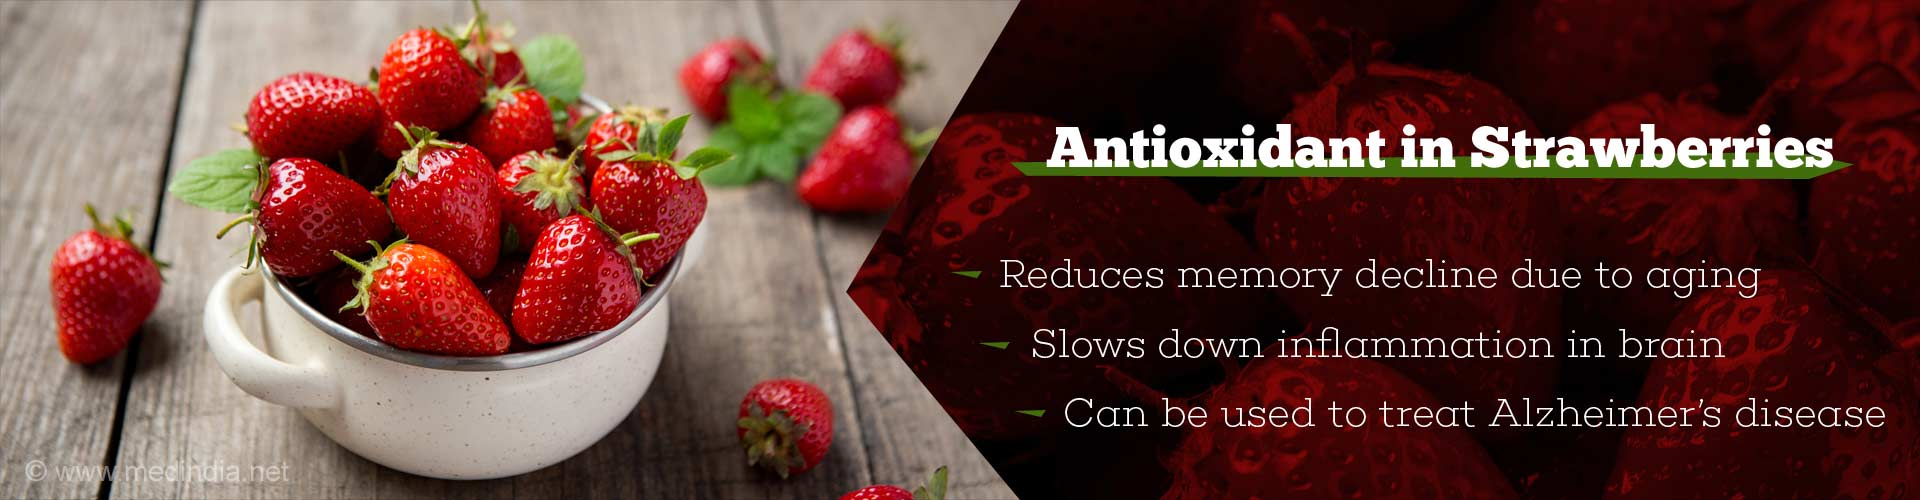 antioxidant in strawberries - reduces memory decline due to aging - slows down inflammation in brain - can be used to treat Alzheimer's disease